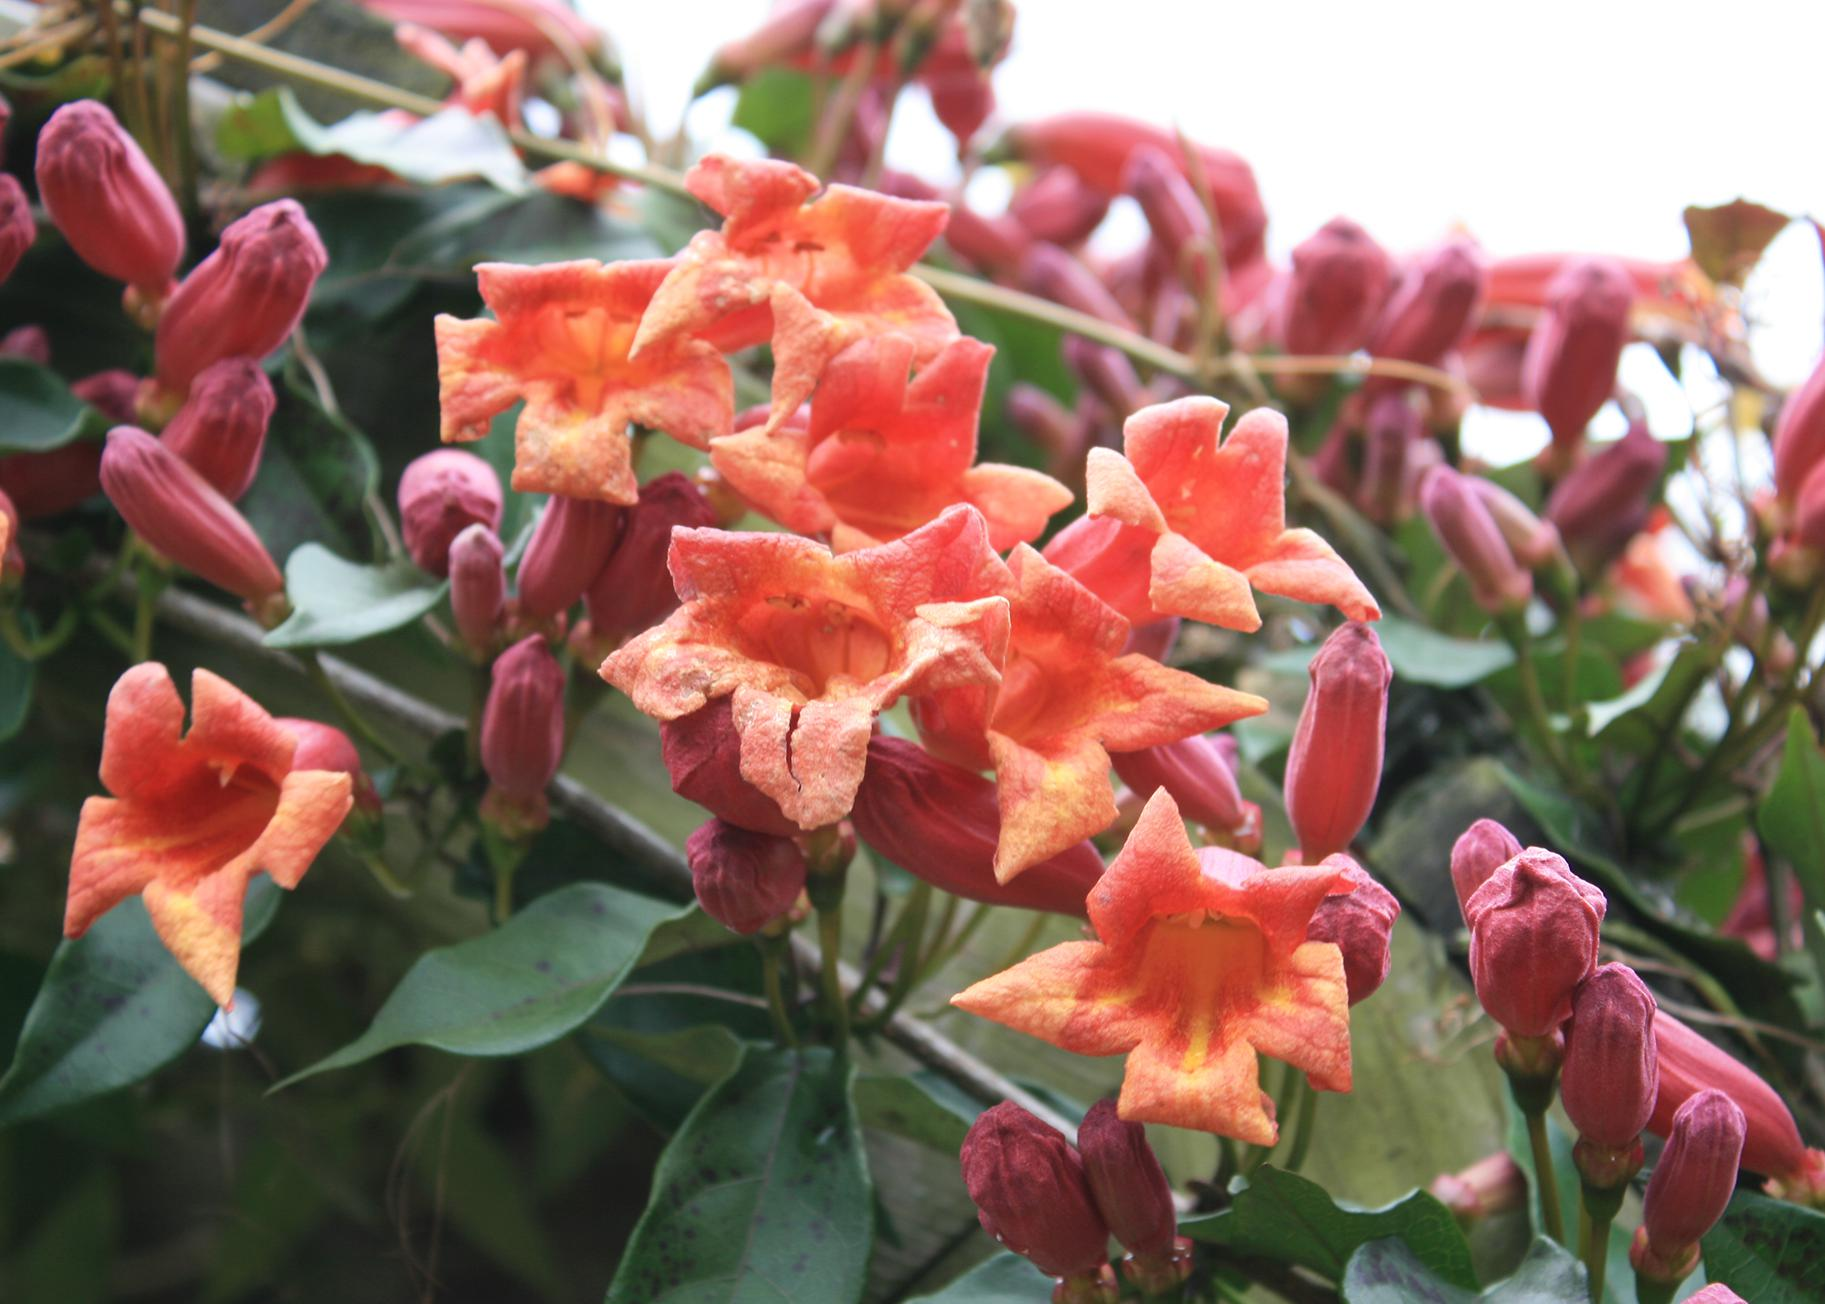 Trumpet-shaped orange flowers bloom on vines next to pink buds.